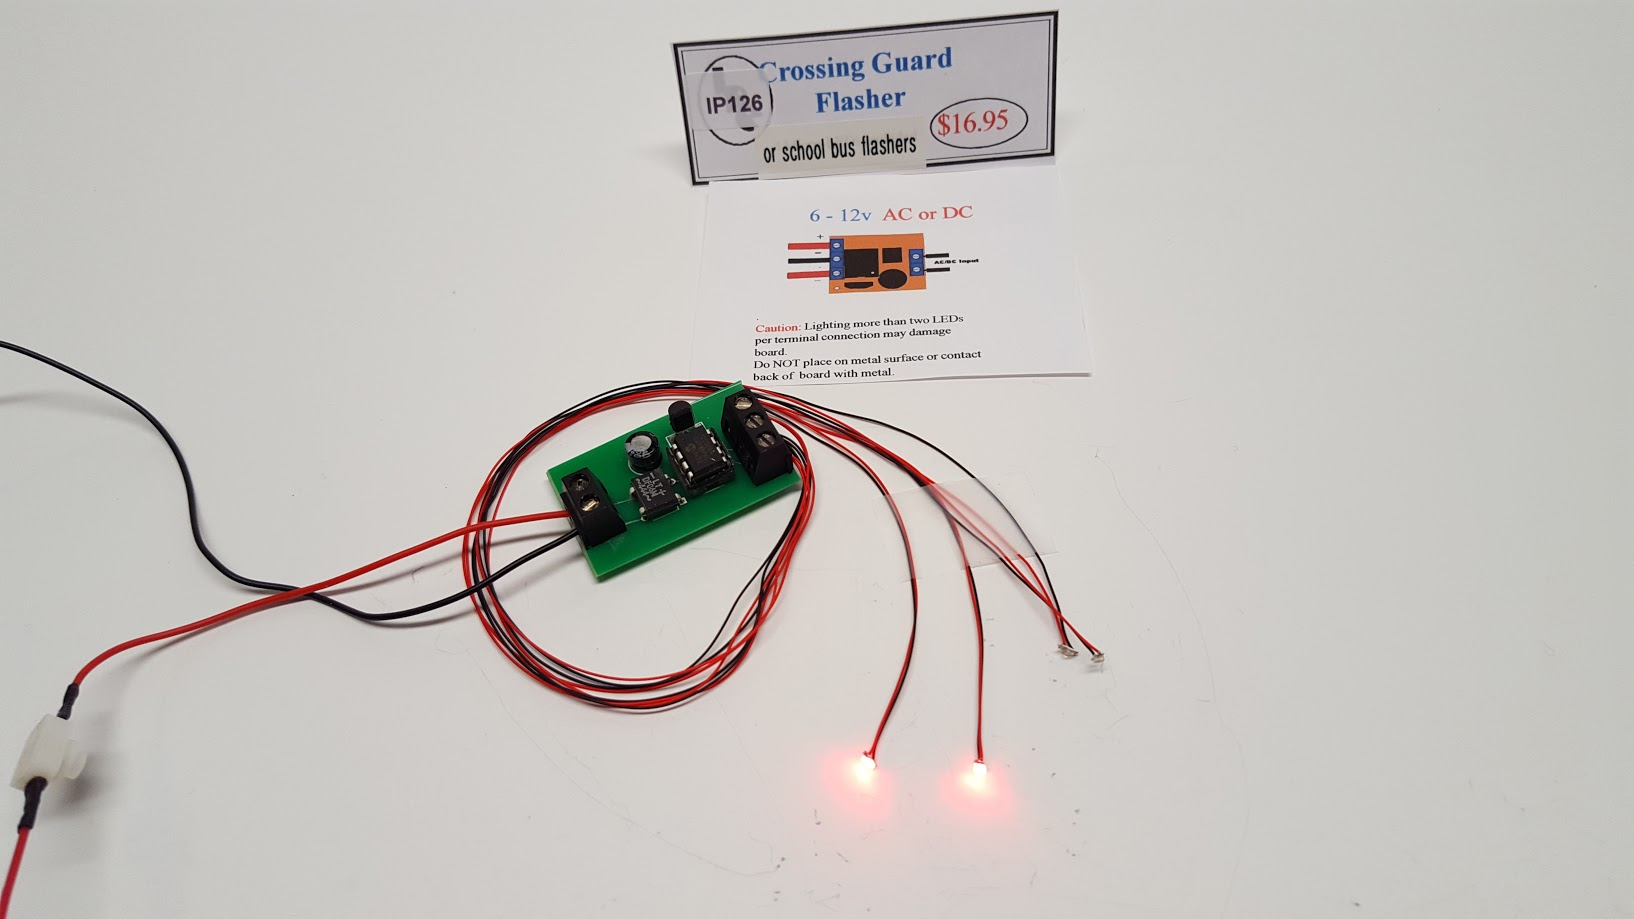 Alternating Flashing Leds Archives Blinking Circuit Red Chips For A School Bus Or Crossing Guards 0